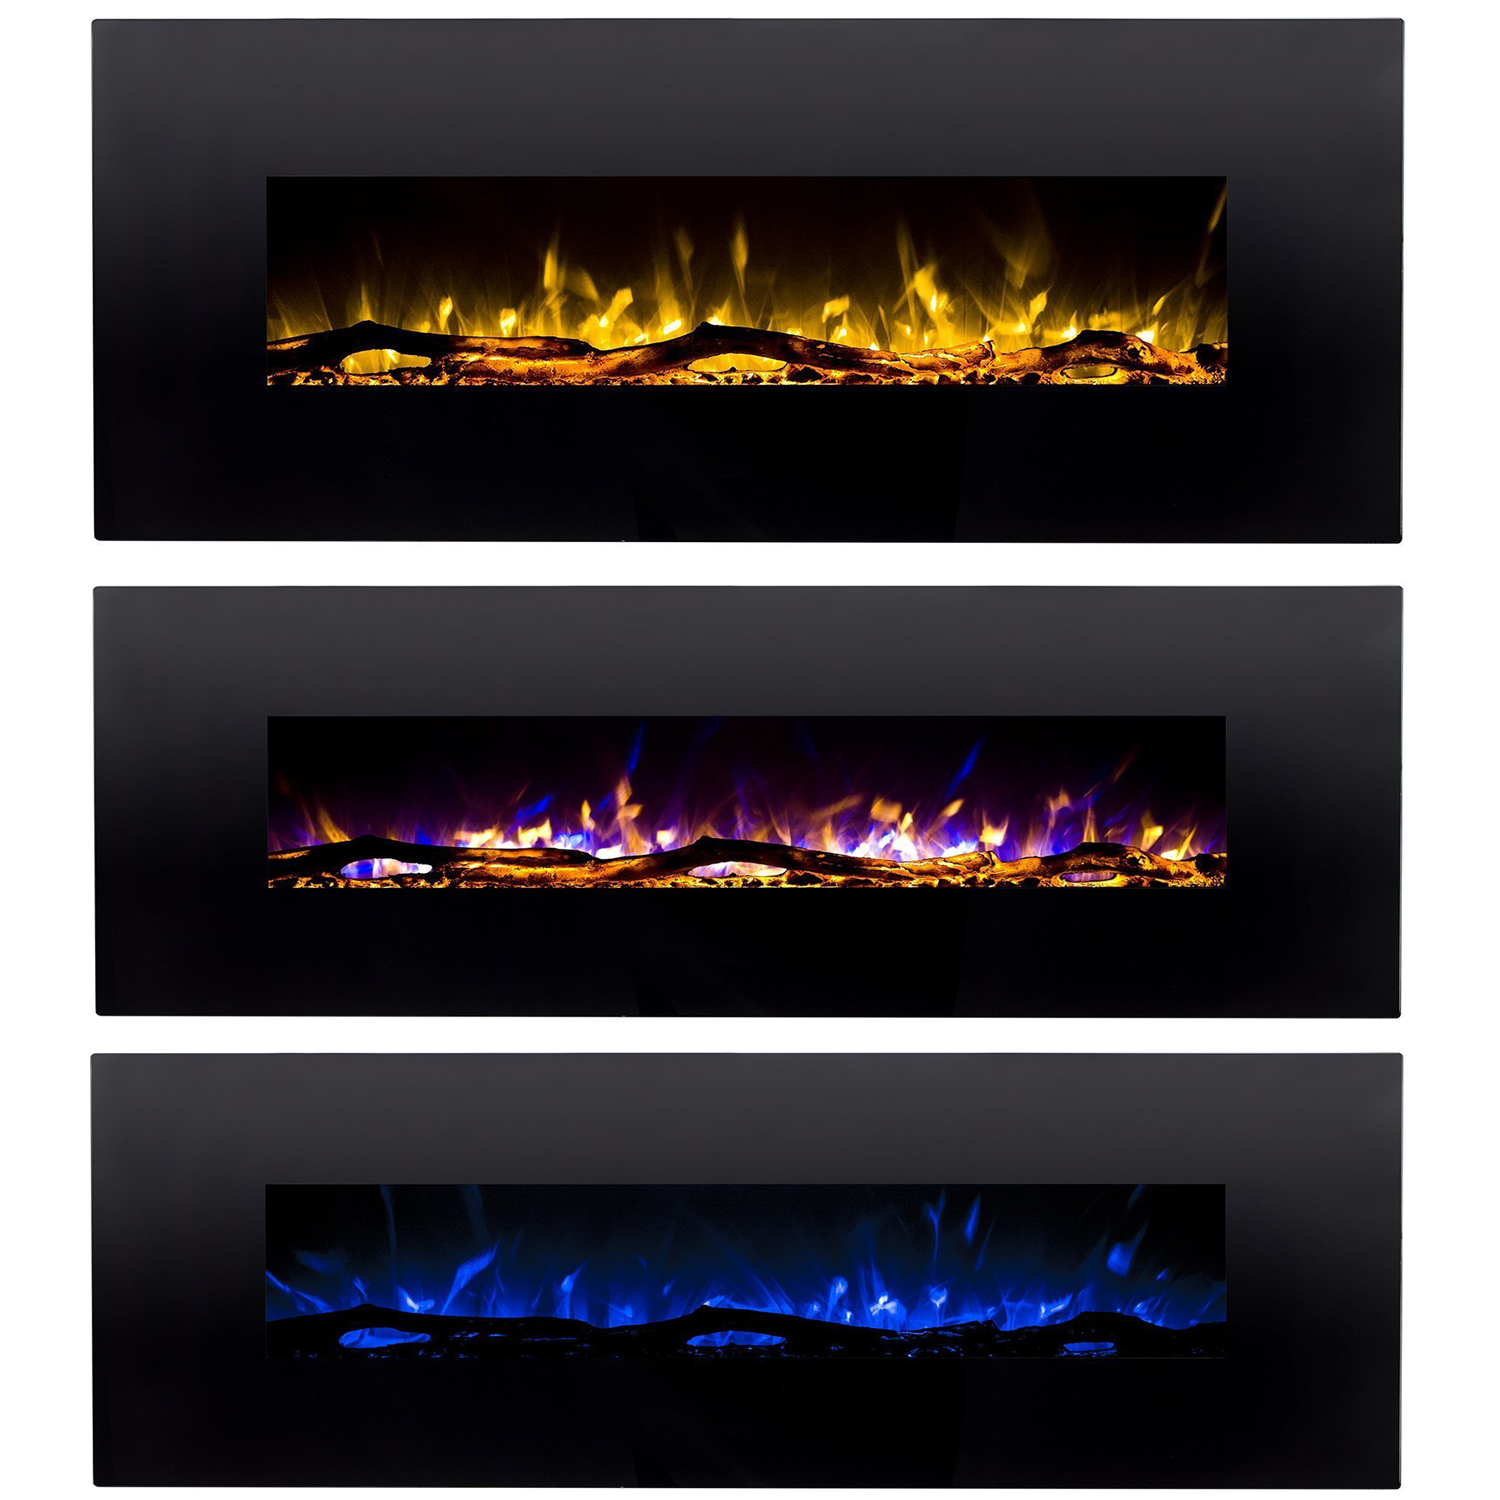 Details About Regal Flamedenali 60 3 Color Ventless Heater Electric Wall Mounted Fireplace